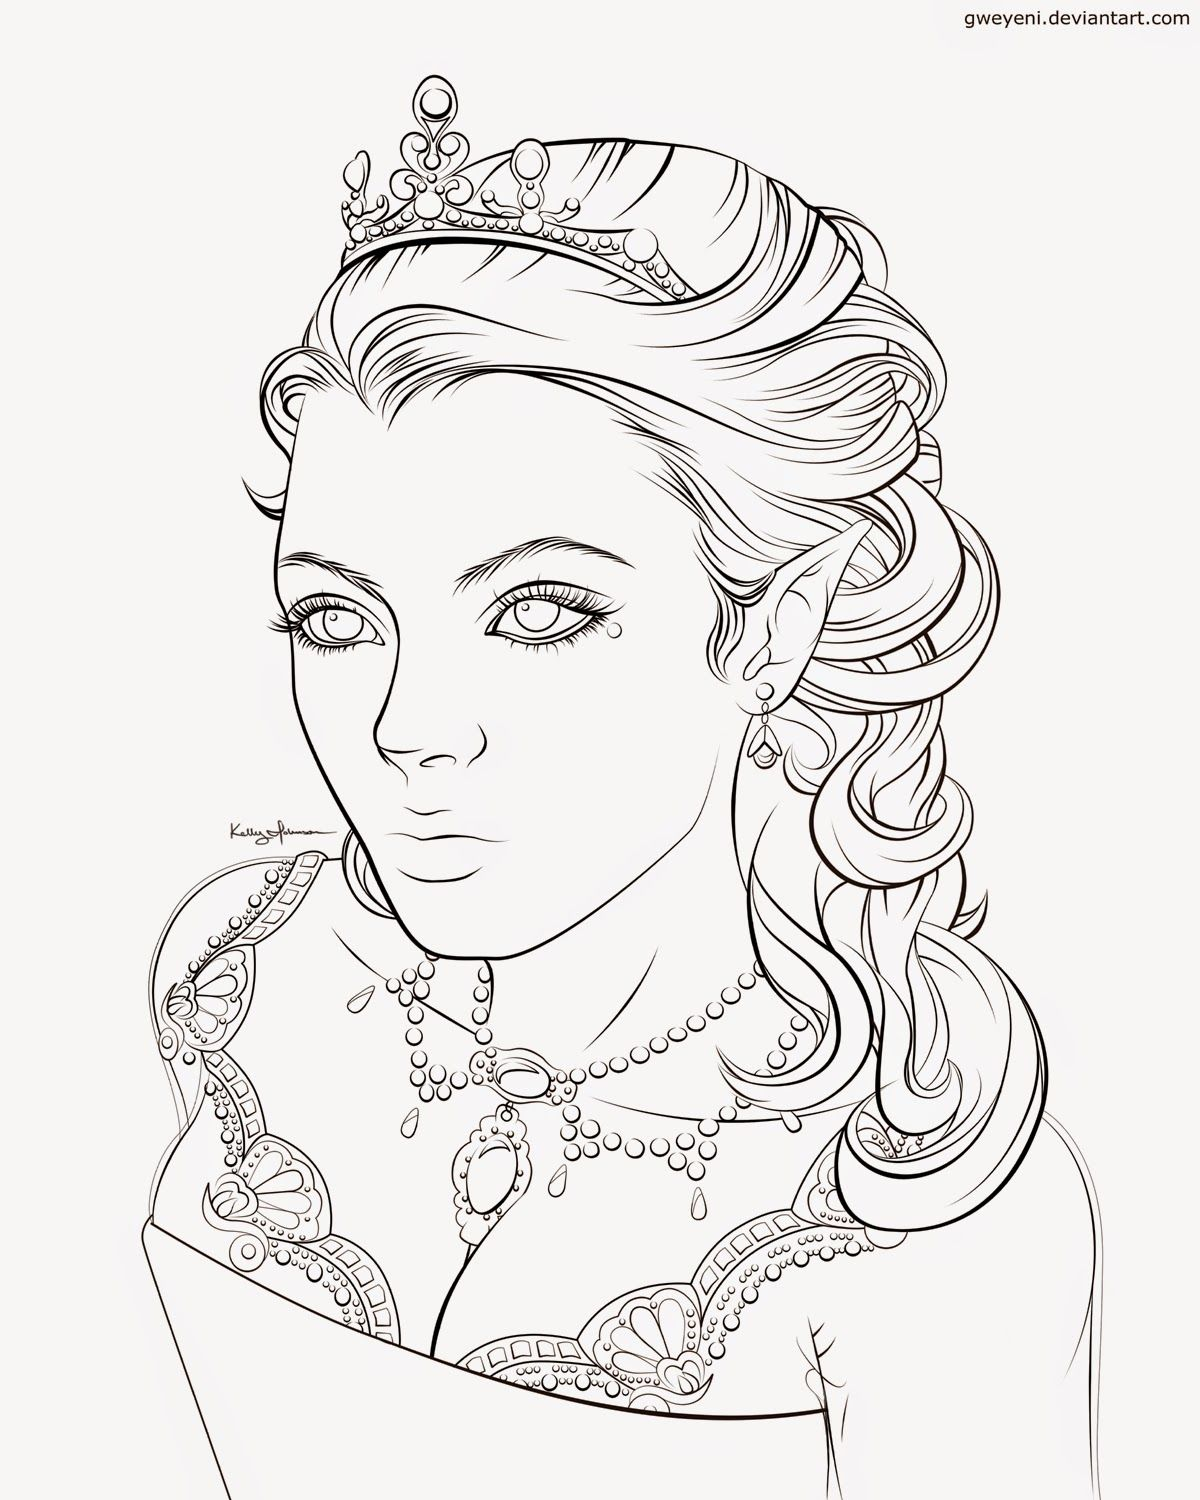 dragons, fairies and wizards coloring pages - Yahoo Image Search ...